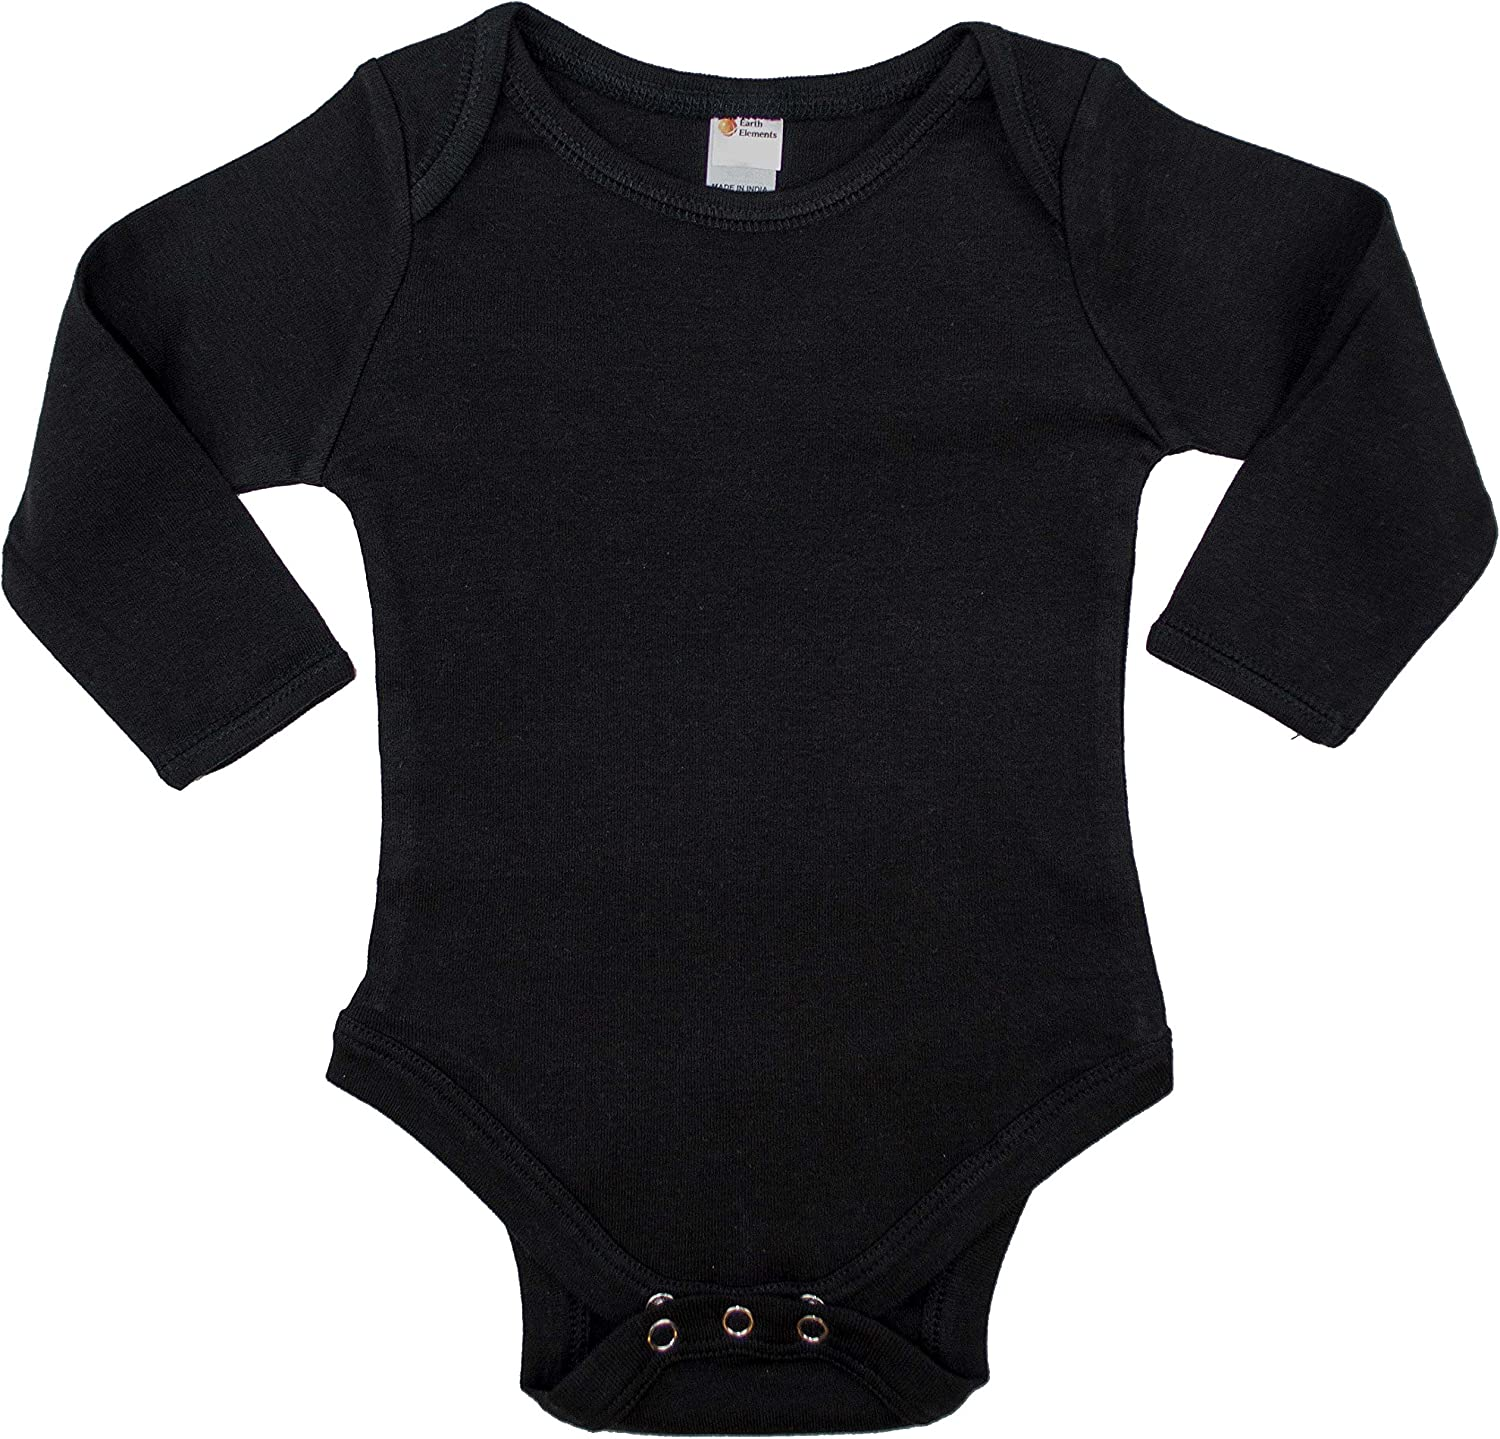 Earth Elements Baby Sleeve Bodysuit Long Sales Ranking TOP15 results No. 1